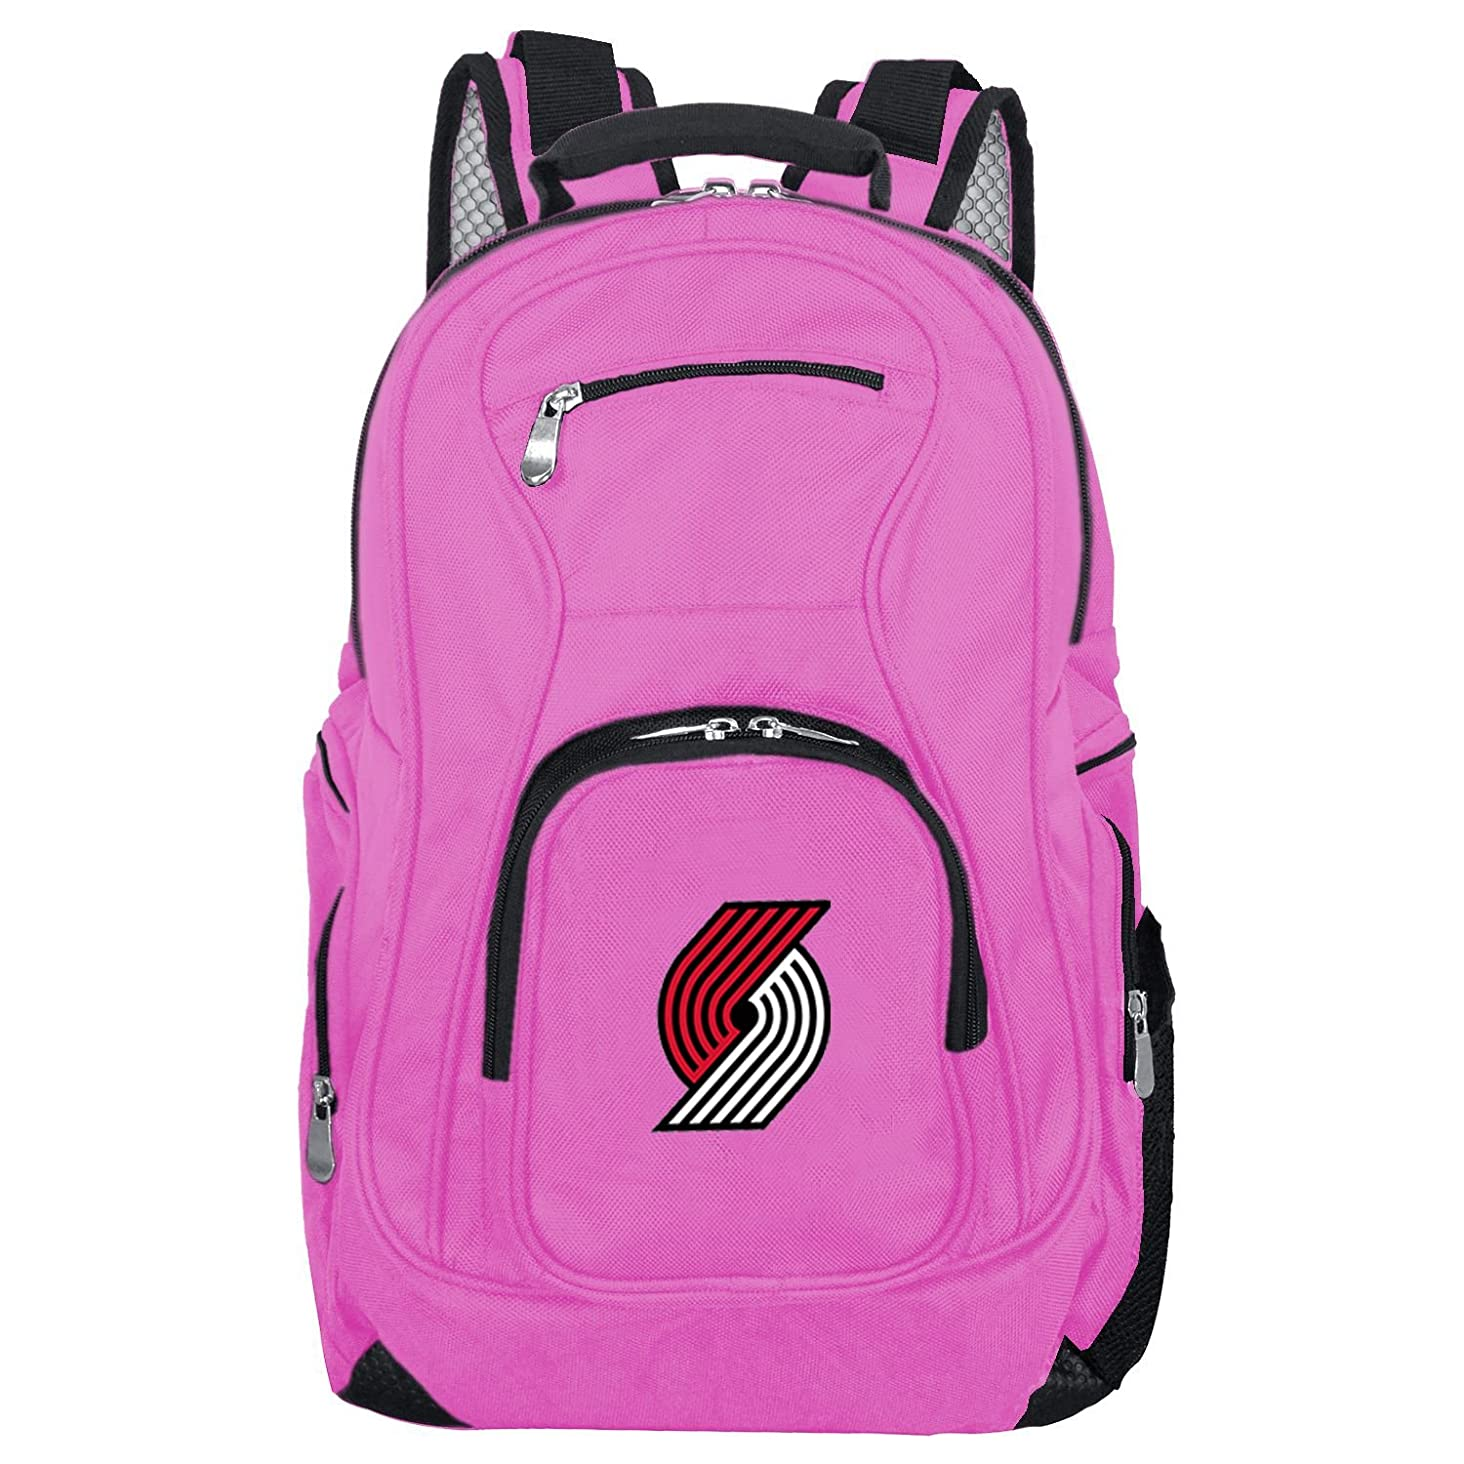 Denco NBA Voyager Laptop Backpack, 19-inches, Pink